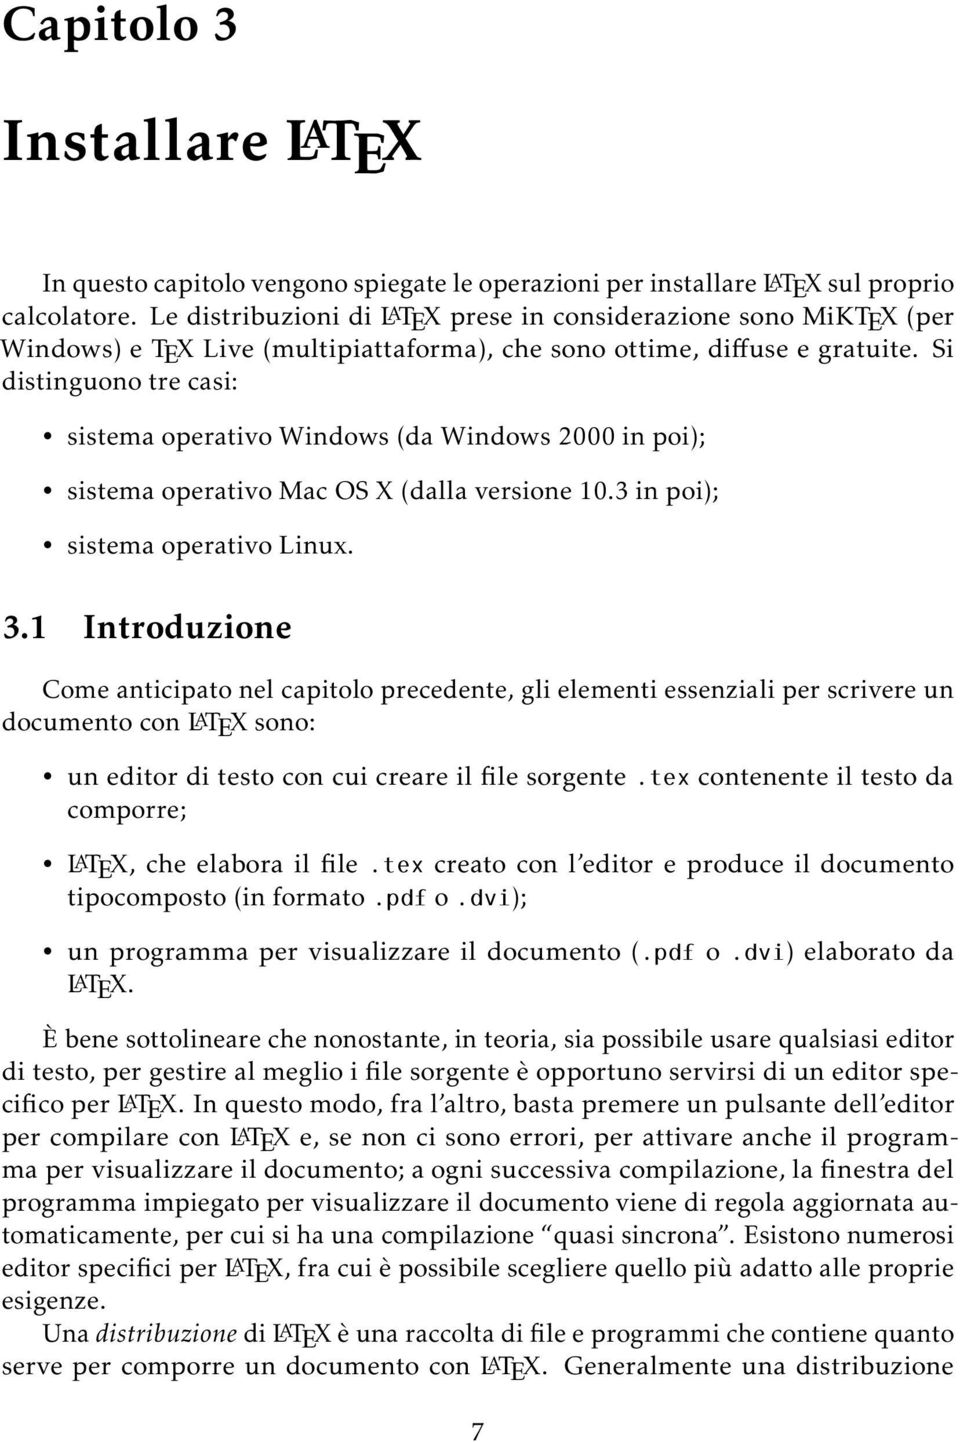 Si distinguono tre casi: sistema operativo Windows (da Windows 2000 in poi); sistema operativo Mac OS X (dalla versione 10.3 in poi); sistema operativo Linux. 3.